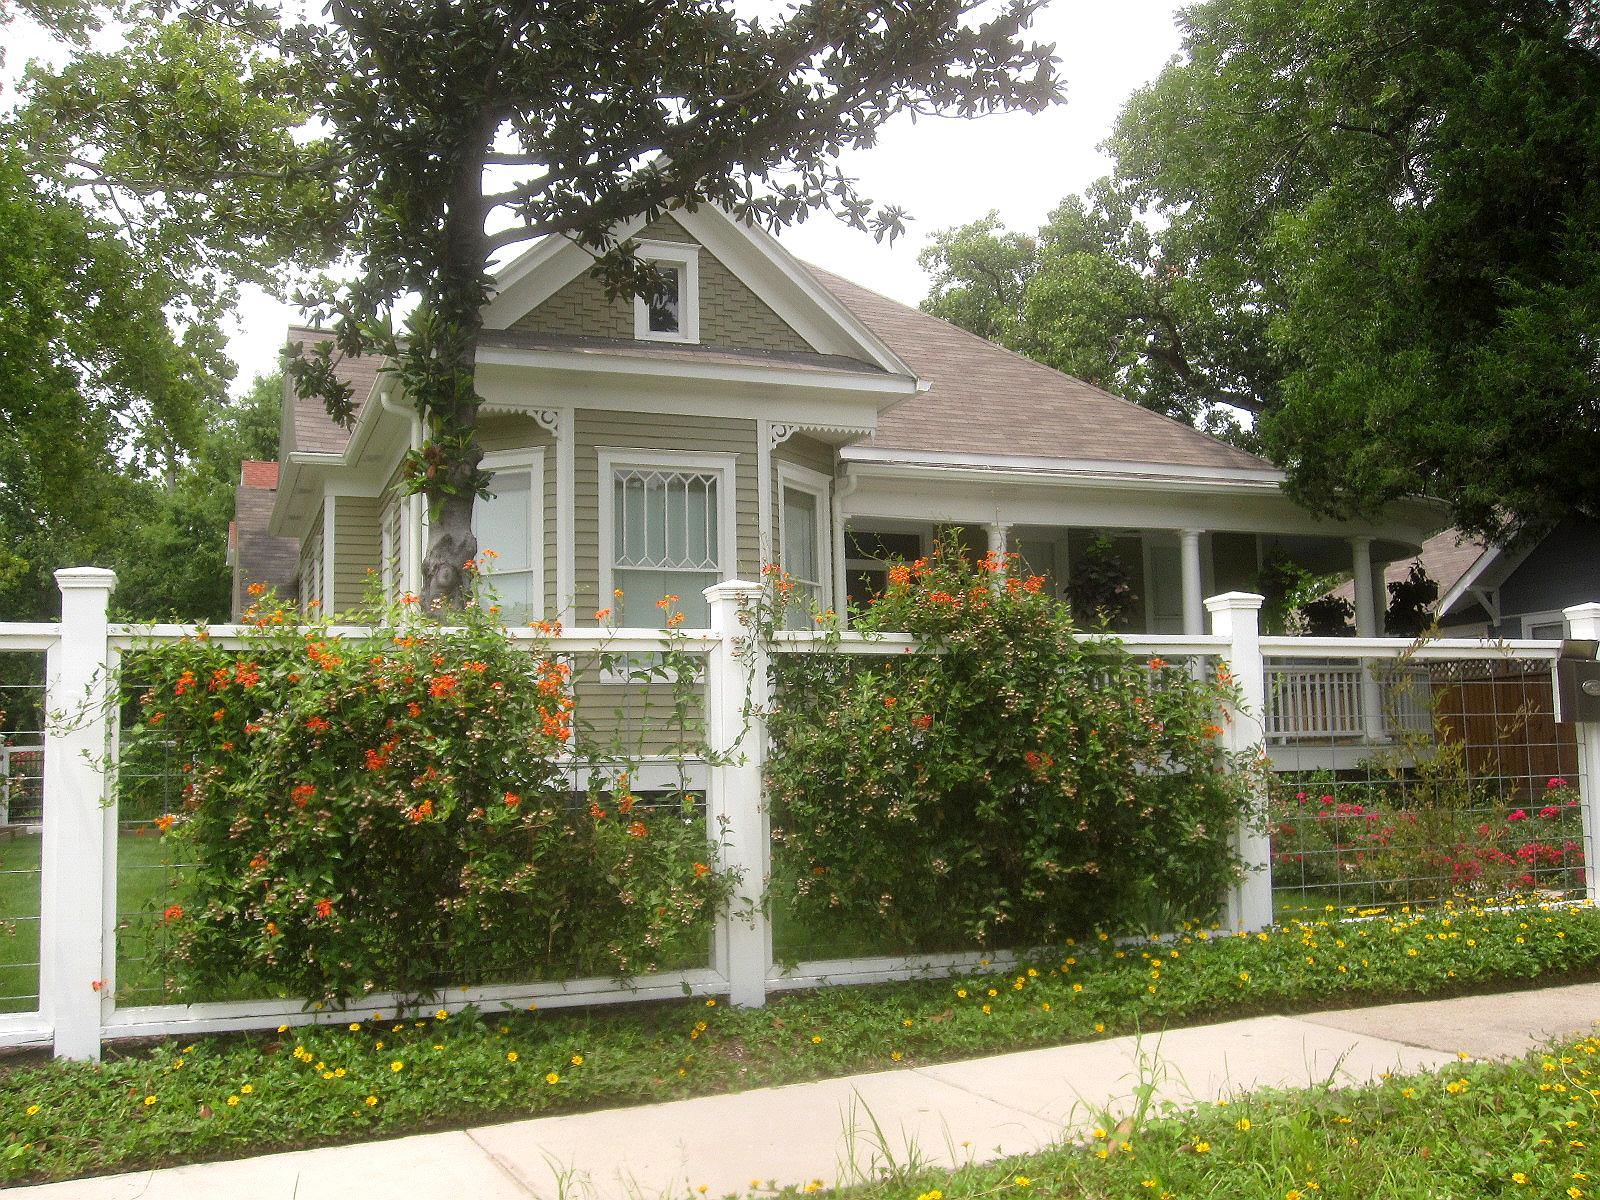 The other houston bungalow front yard garden ideas for Front lawn ideas